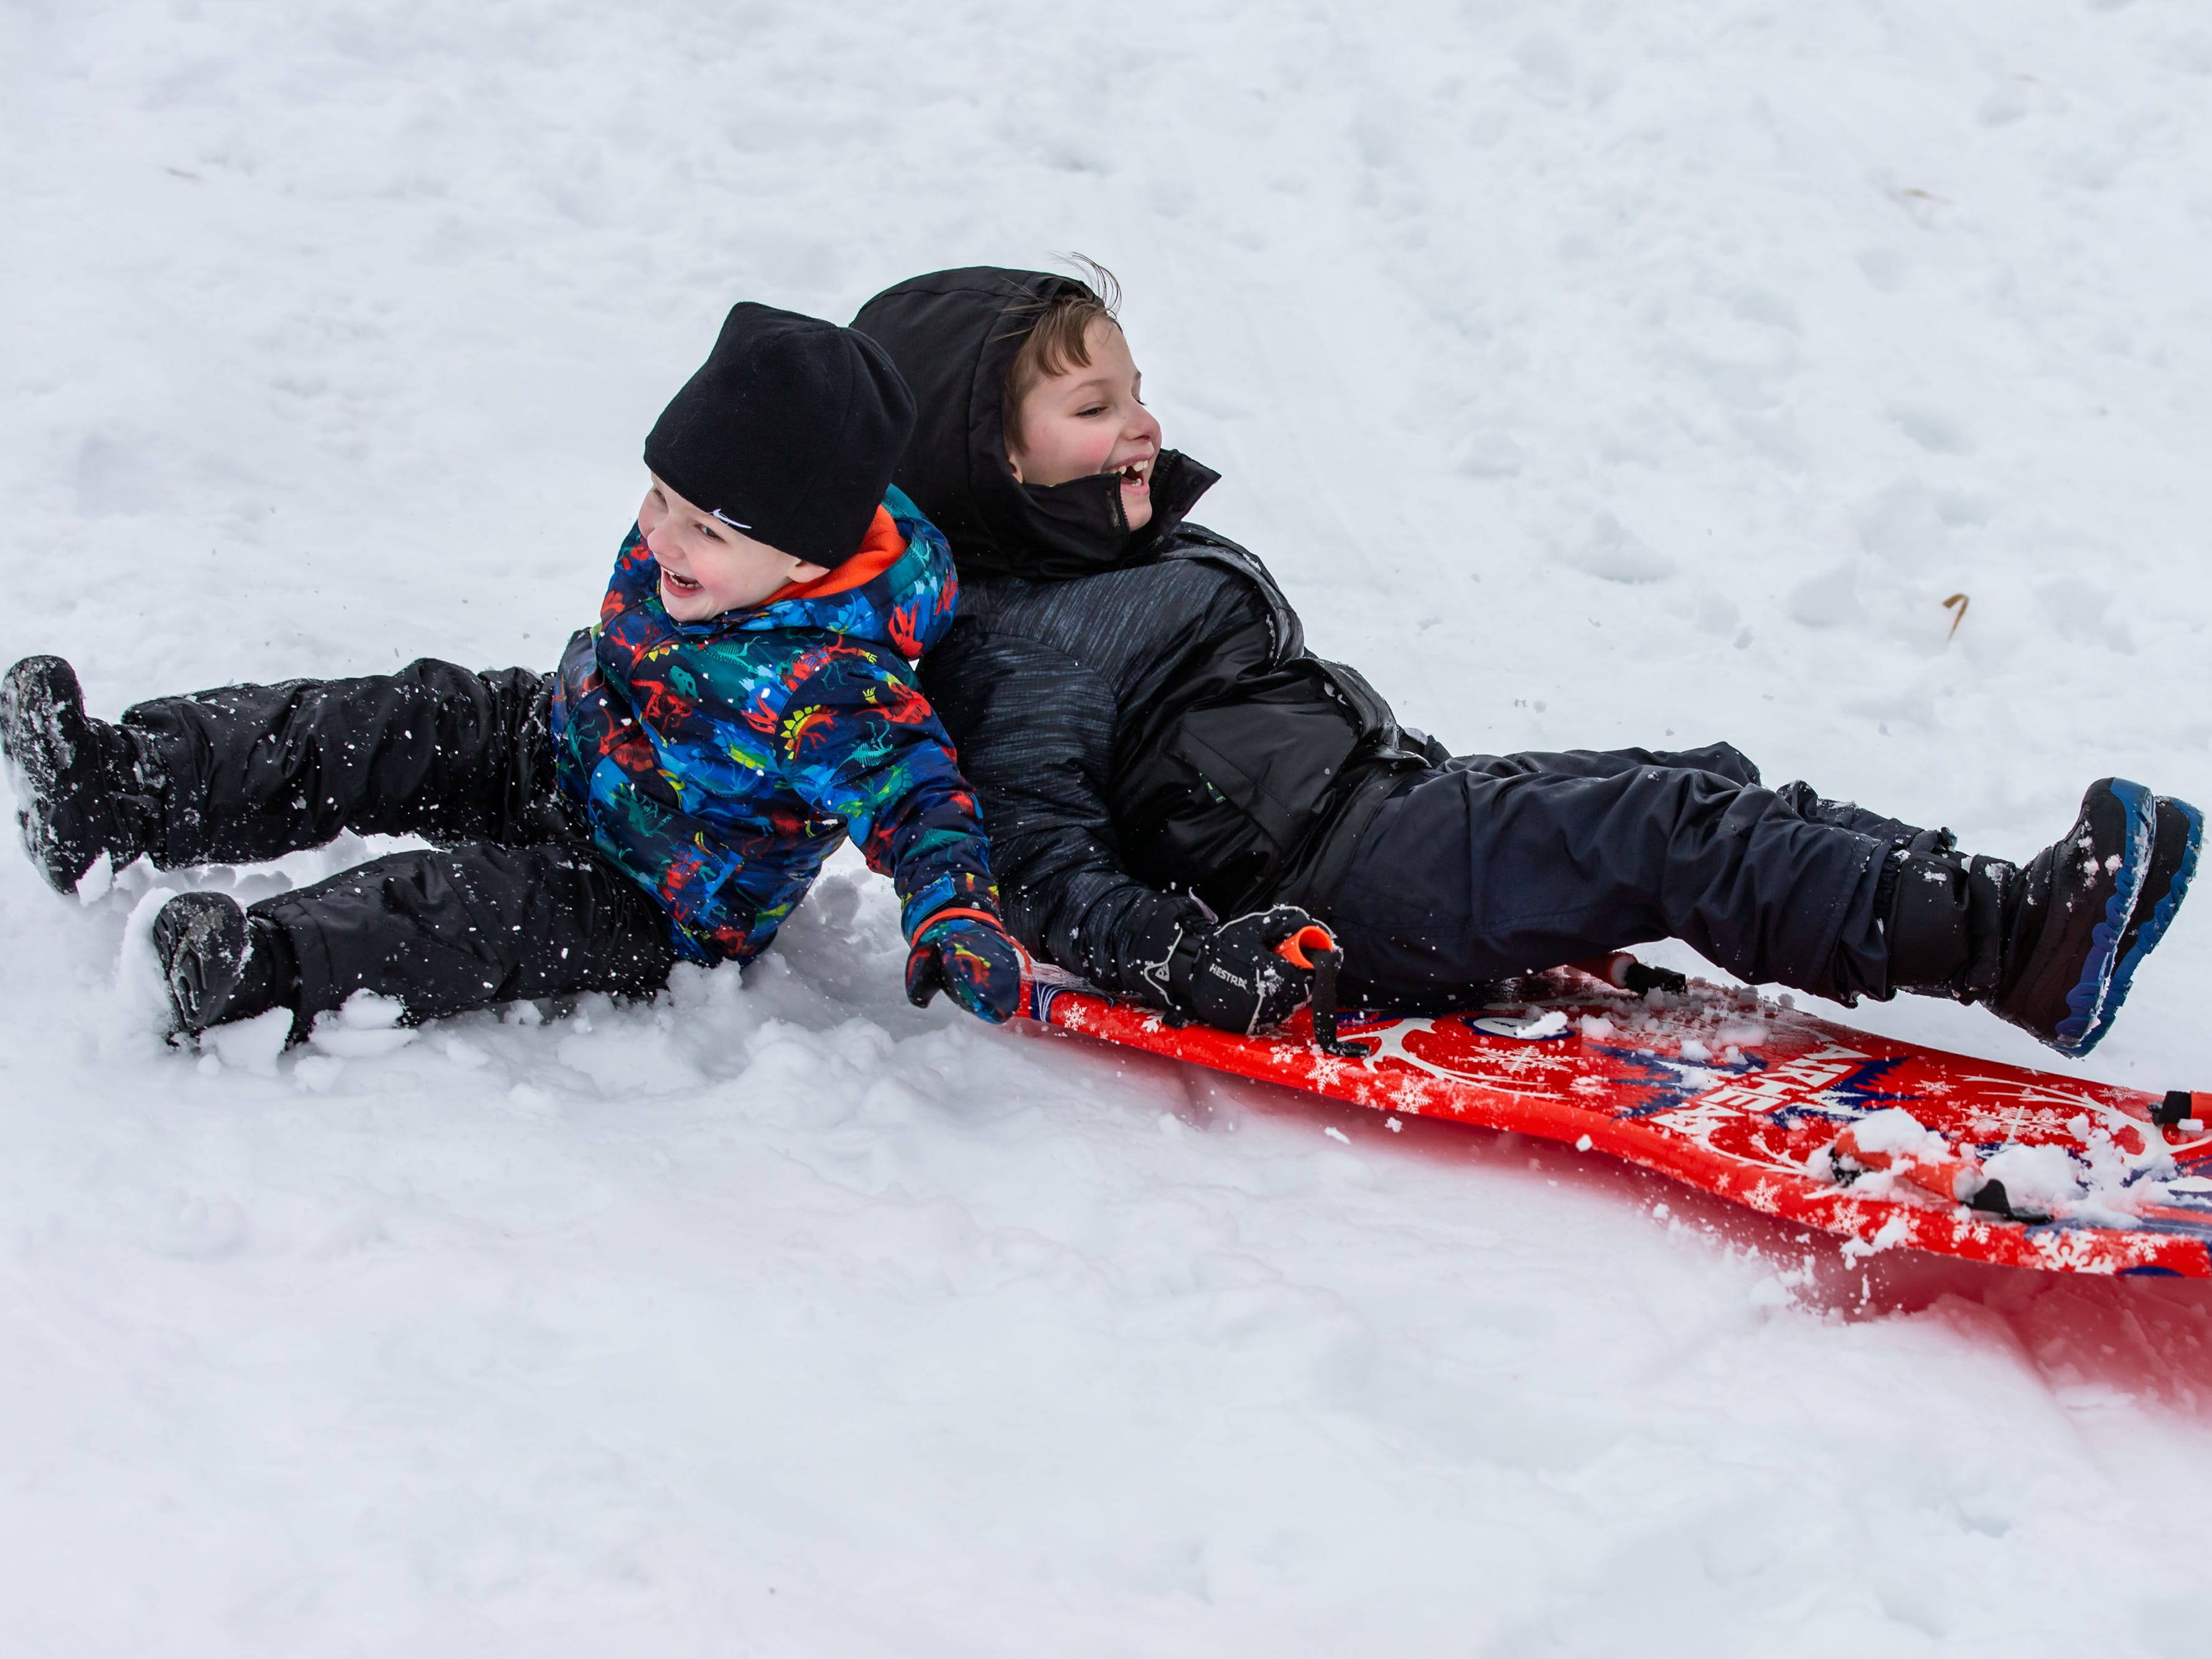 Three-year-old Silas Newsted (left) of Cedarburg and his brother Gavin, 8, take a tumble while sledding at Mee-Kwon Park in Mequon on Saturday, Feb. 2, 2019. The park is open 7 days a week from 6 a.m. to 9 p.m. but is not lighted.